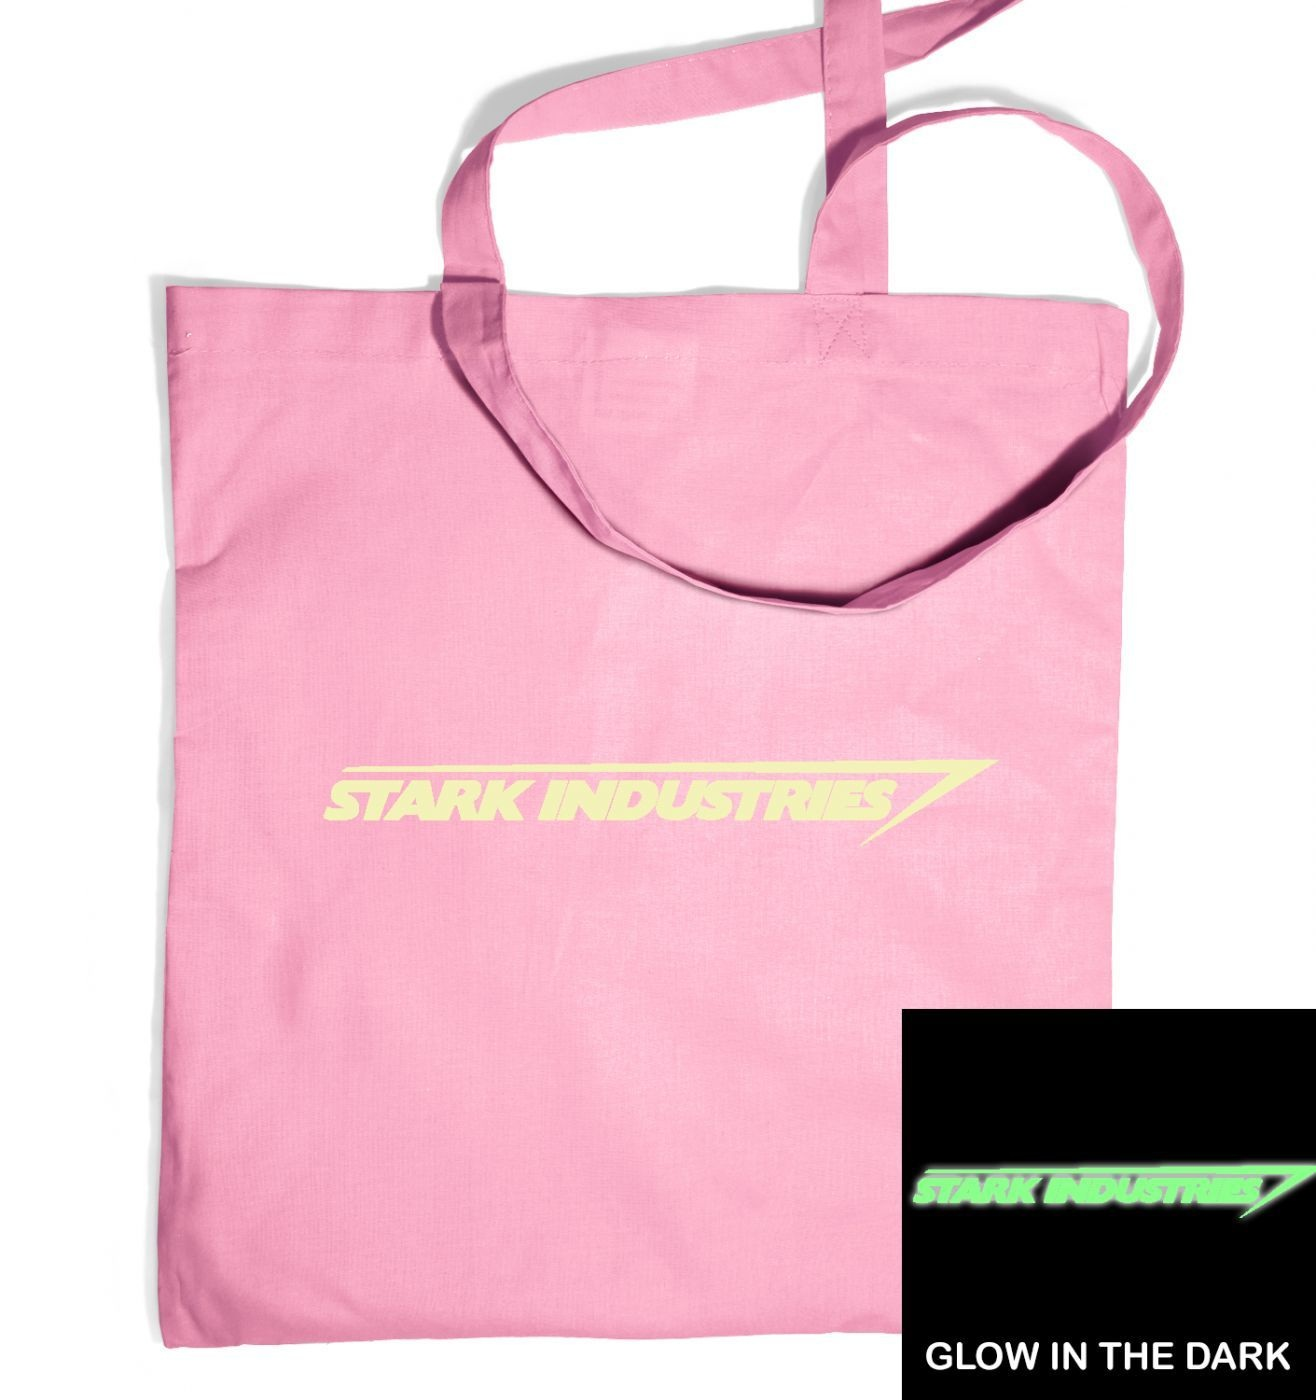 Stark Industries (glow in the dark) tote bag